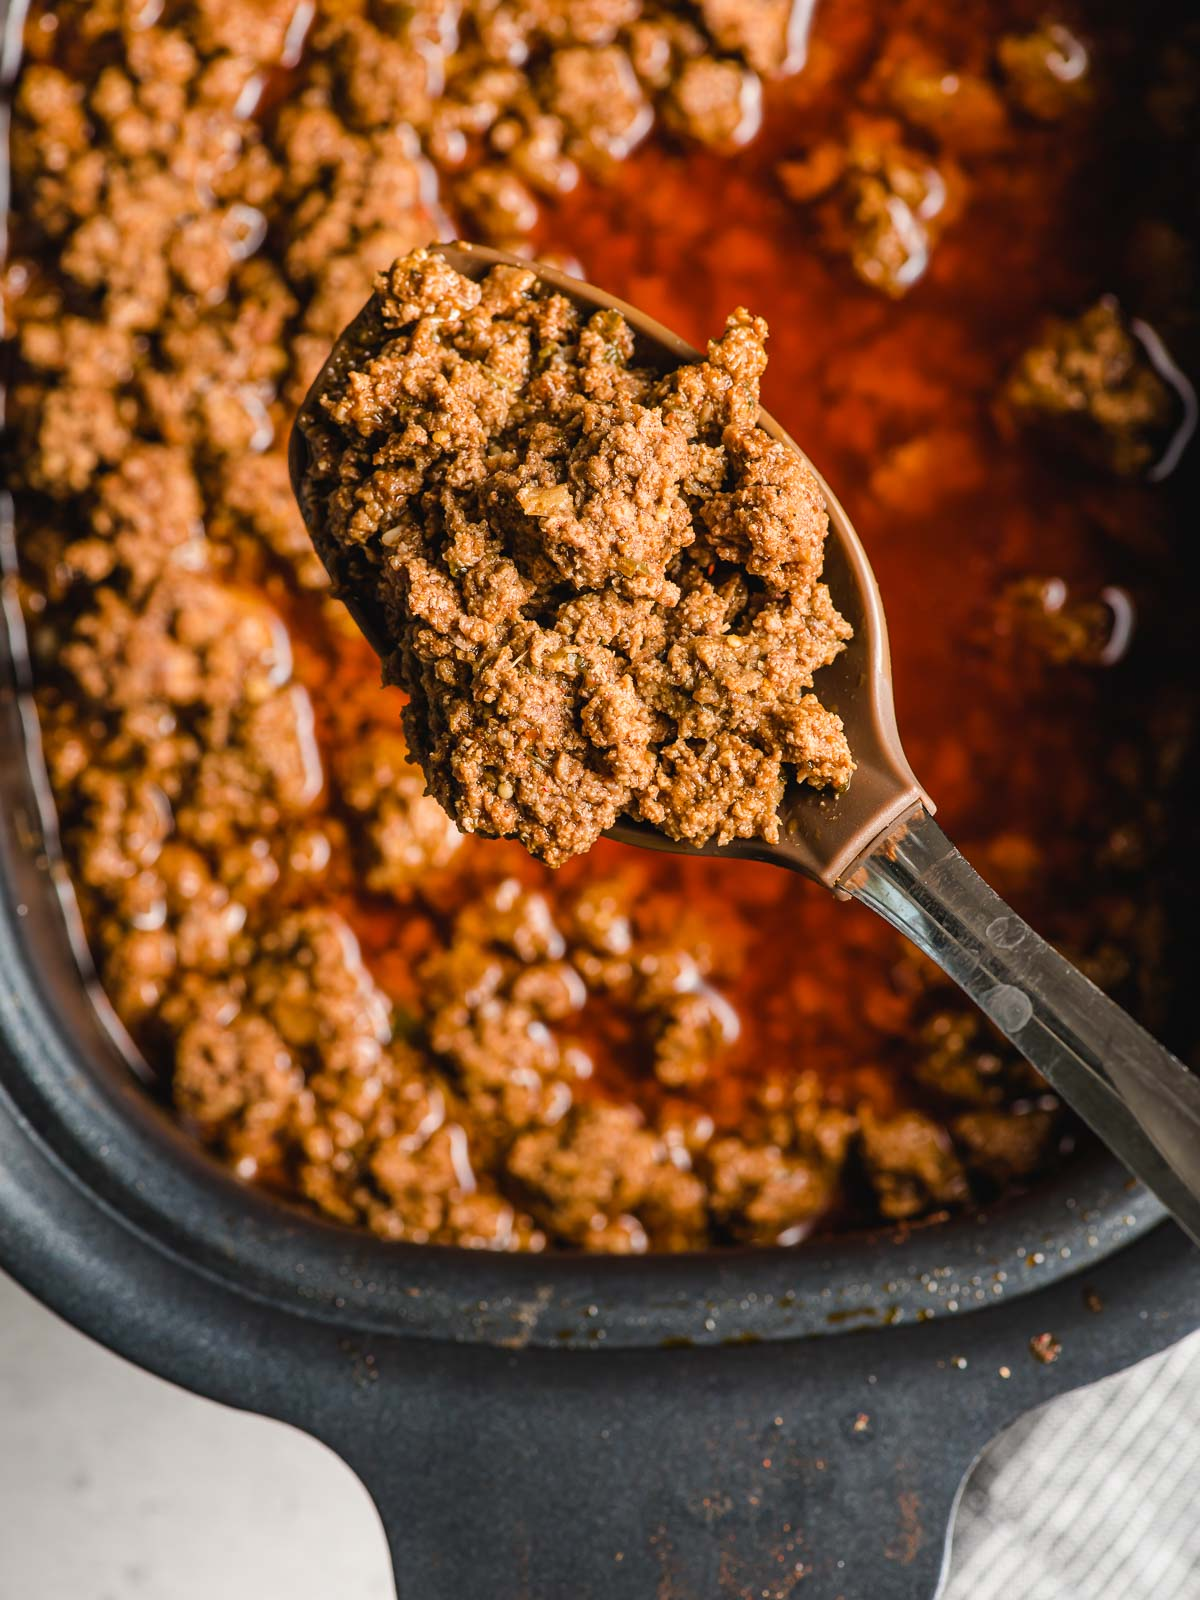 Crock Pot Taco Meat being scooped with a spoon.